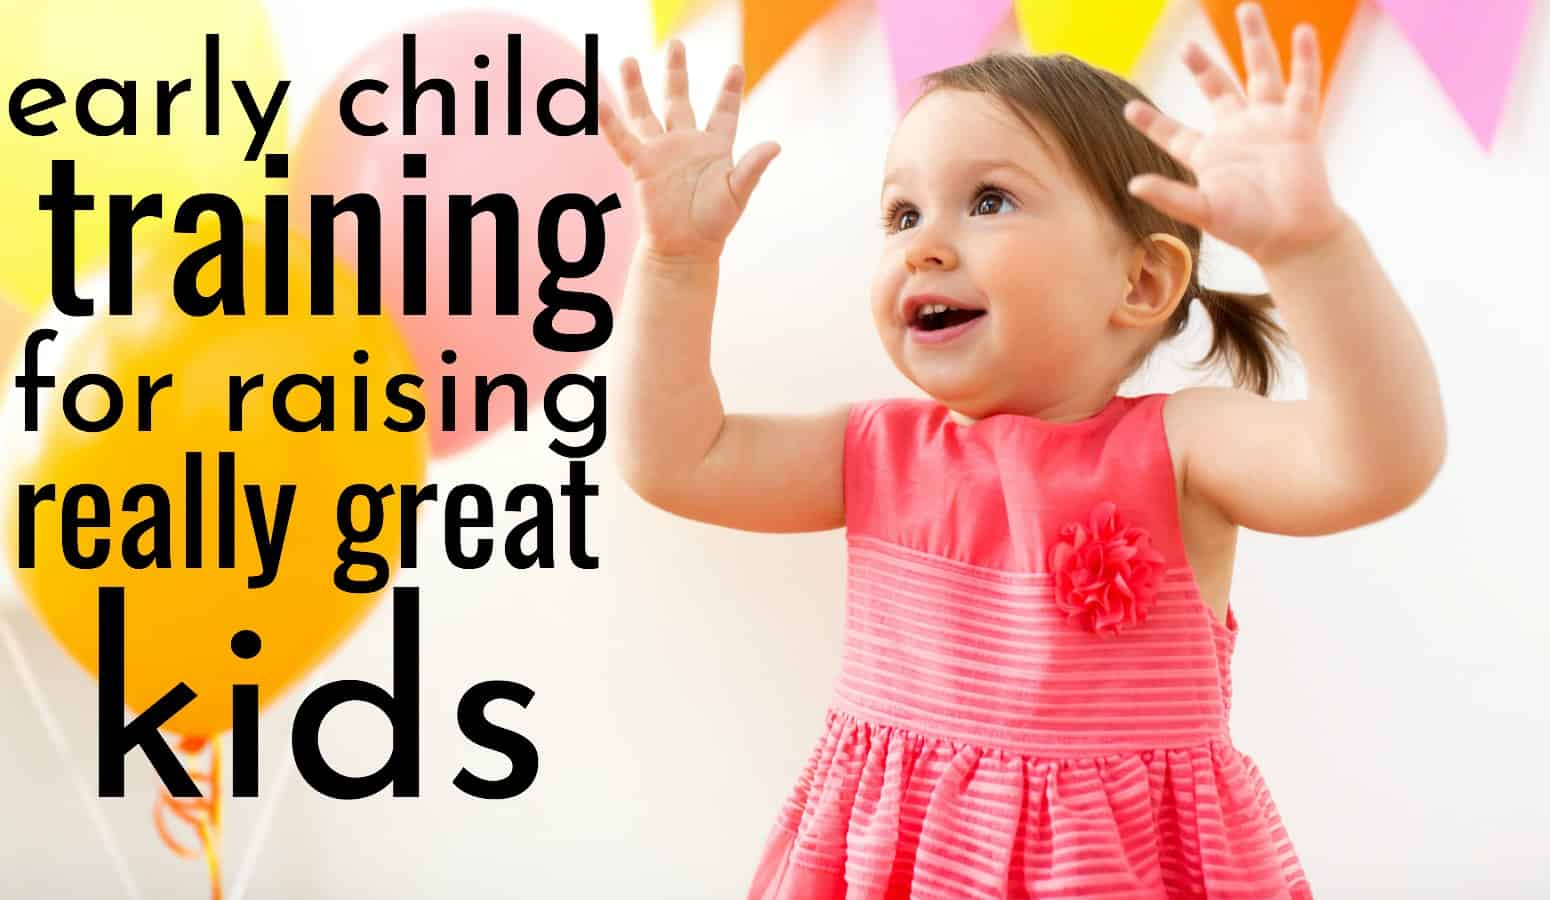 happy little girl being a good kid, raising her hands with joy, because of early child training